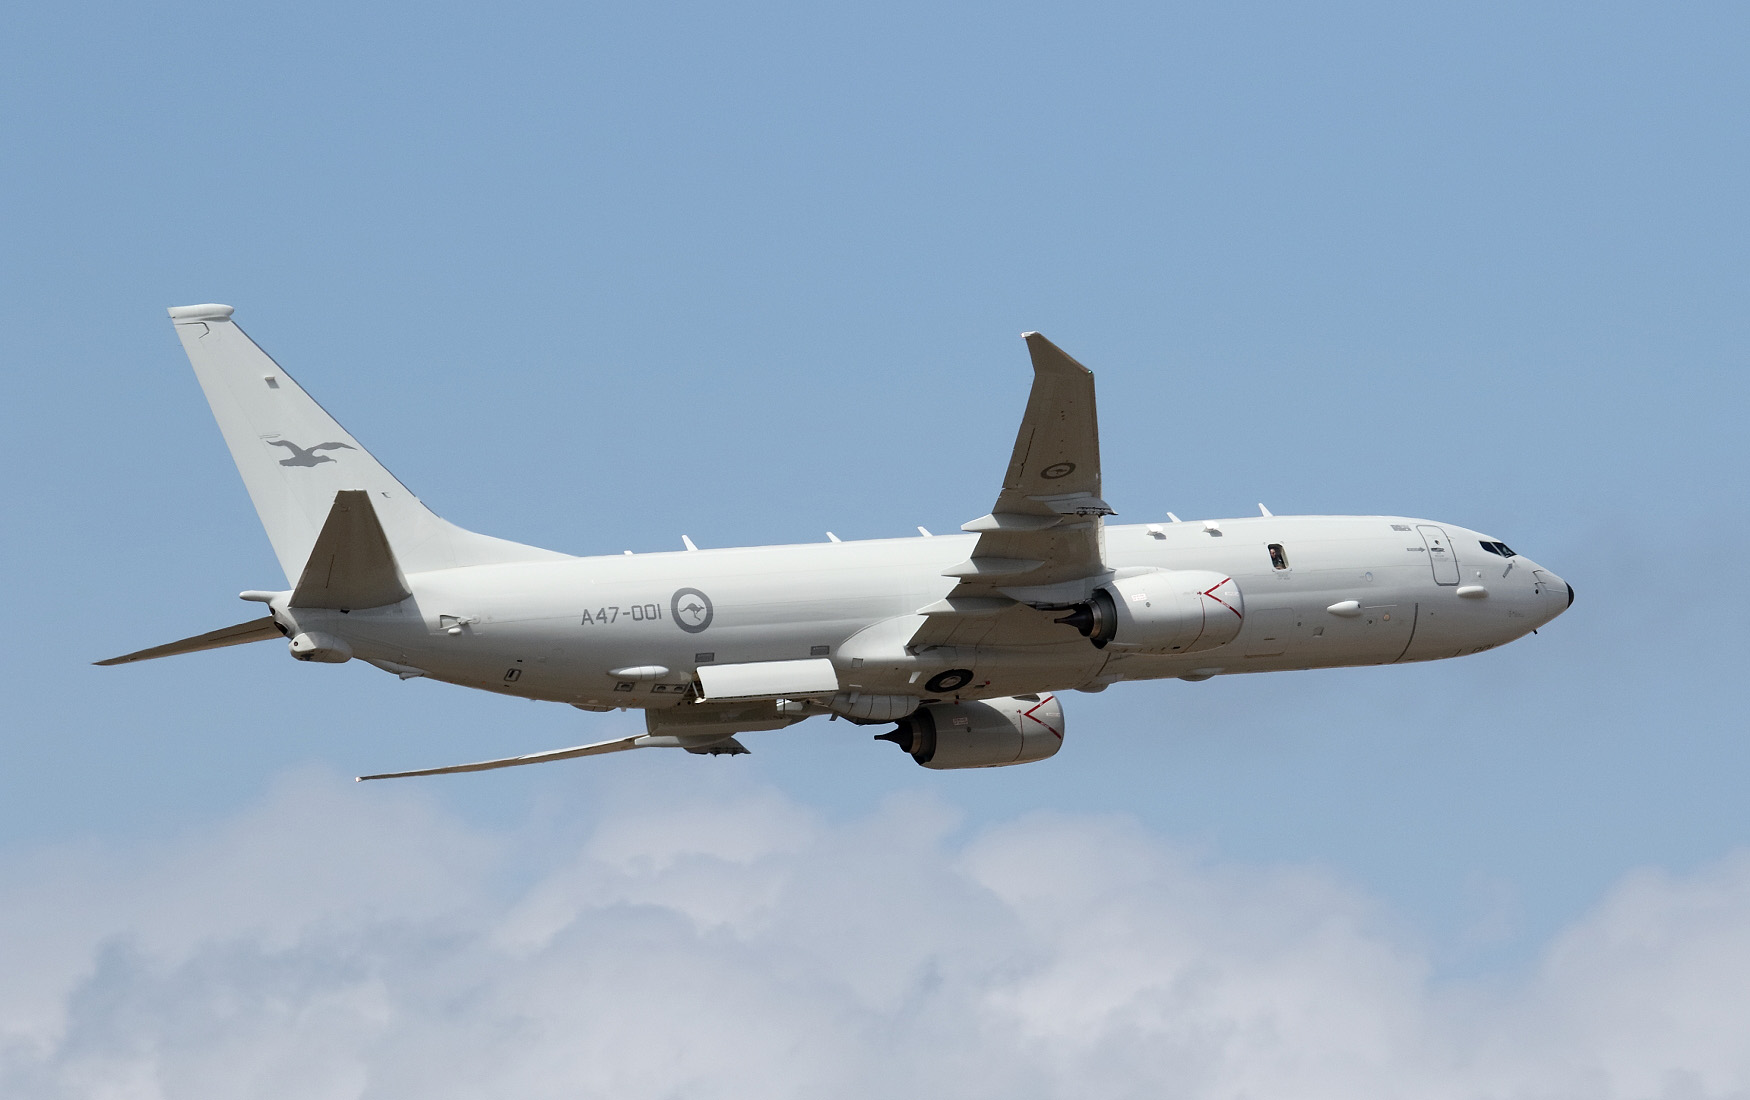 This Royal Australian Air Force P-8A Poseidon multimission aircraft was manufactured by Boeing. Australia has signed for 12 P-8As, which are being delivered, and has expressed a requirement for three more aircraft. (Mike Yeo/Staff)